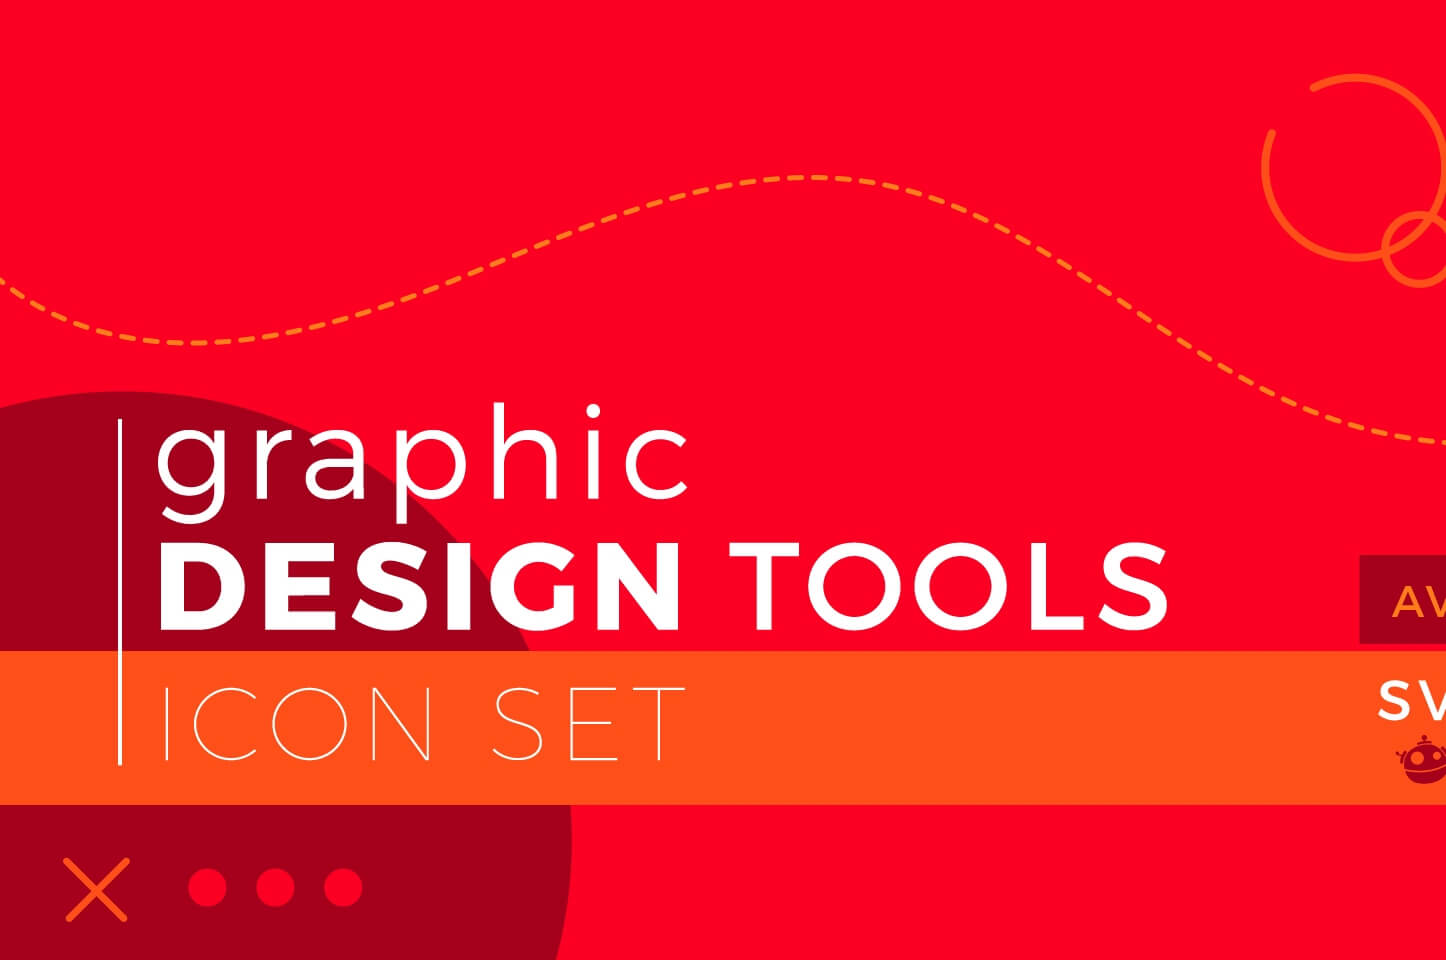 Free Download: 100 Graphic Design Tools Icons